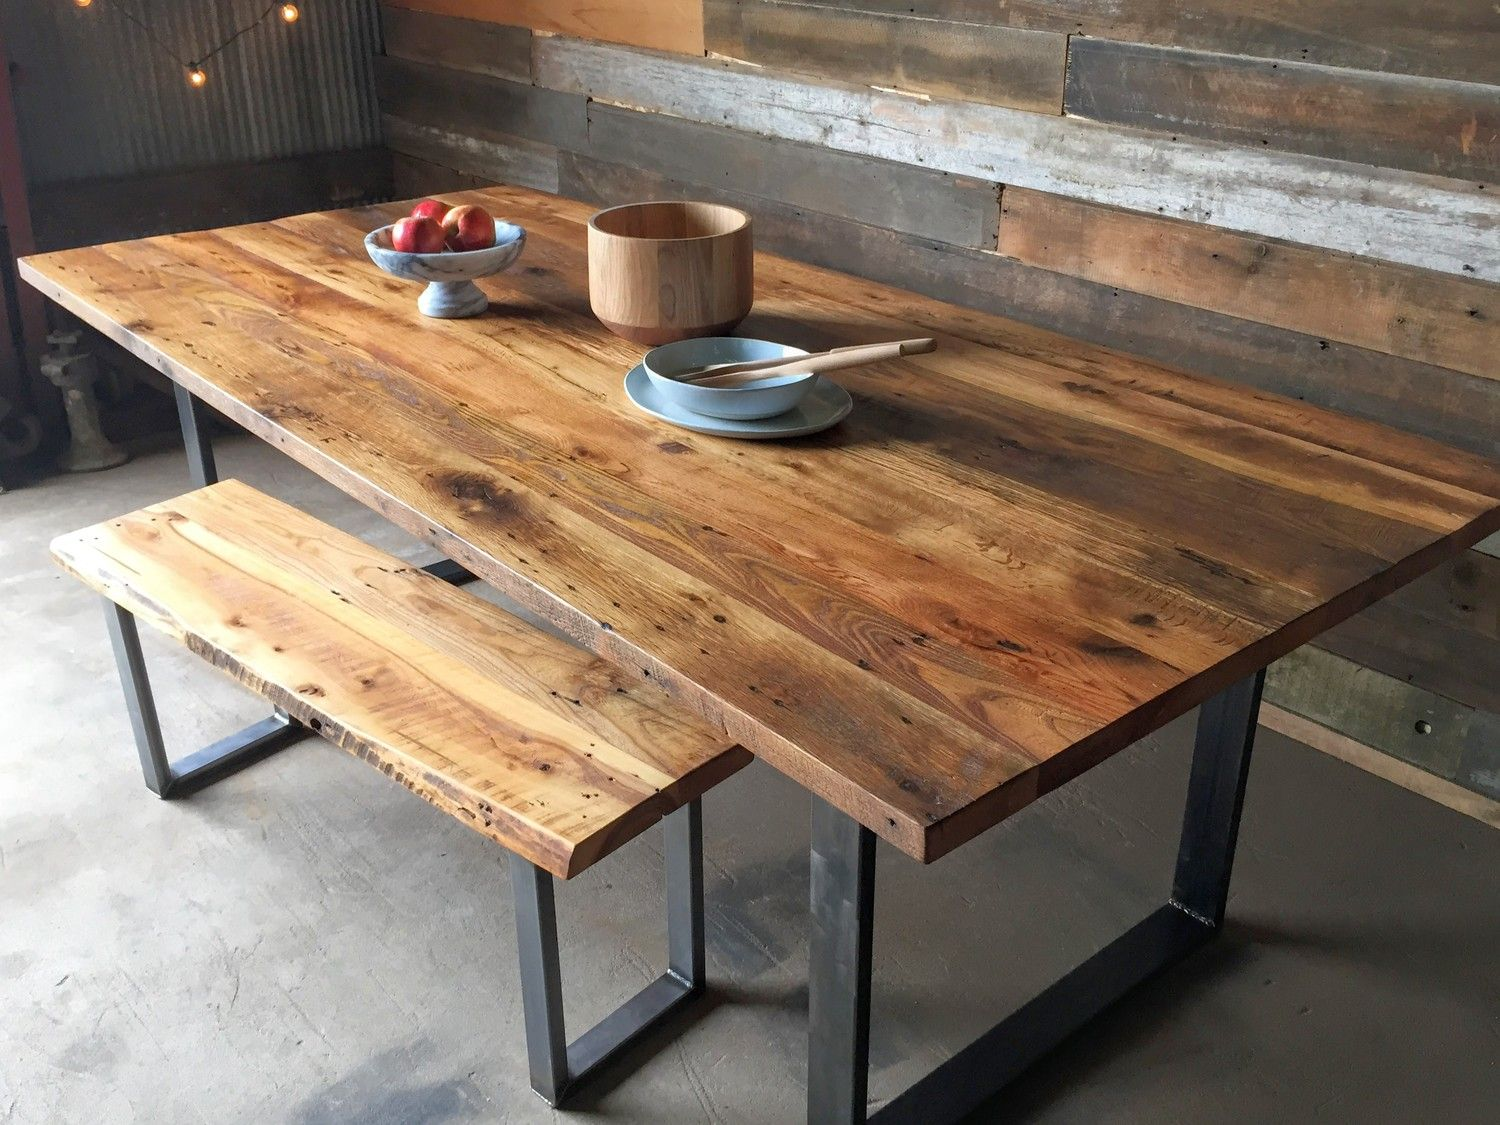 Industrial Modern Dining Table  UShaped Metal Legs